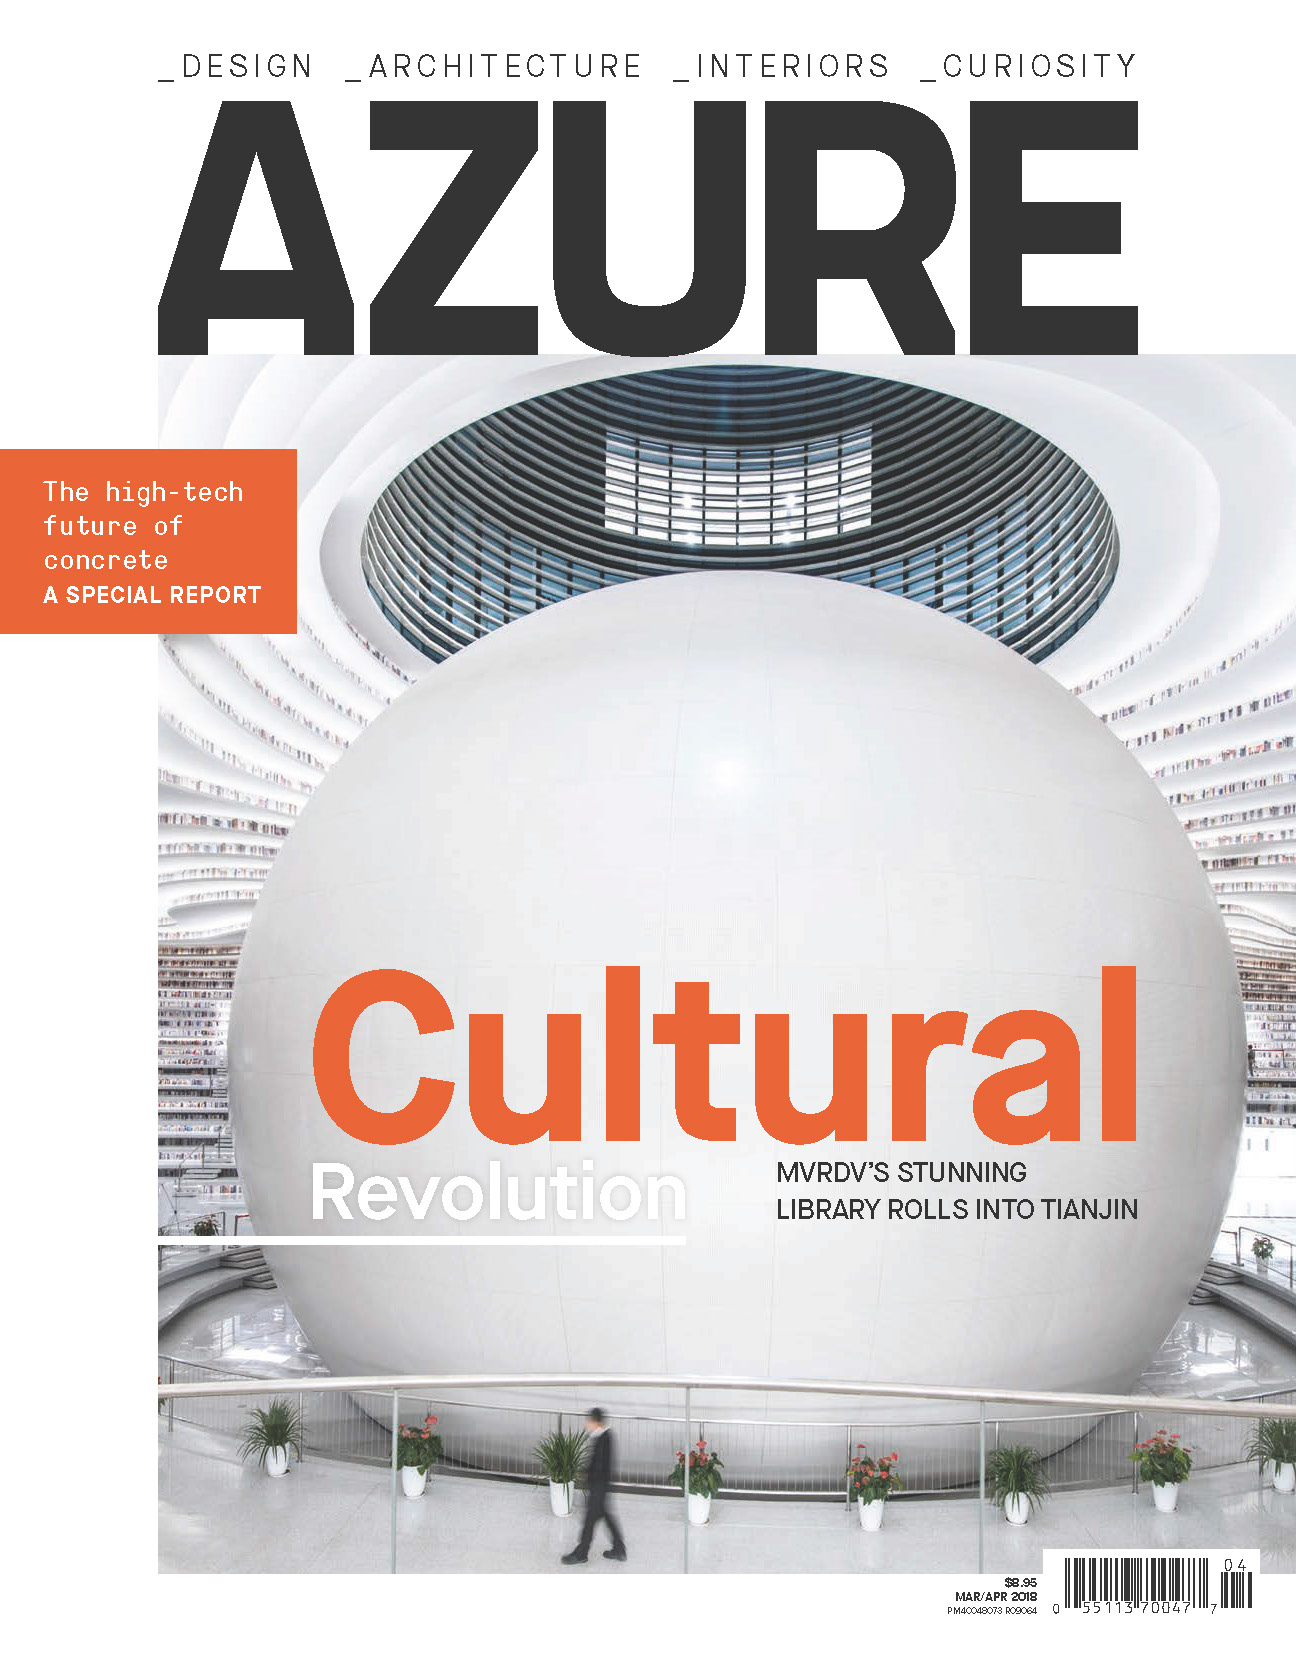 Tinajin Binhai Library is Azure Magazine's Mar/April Icons issue cover